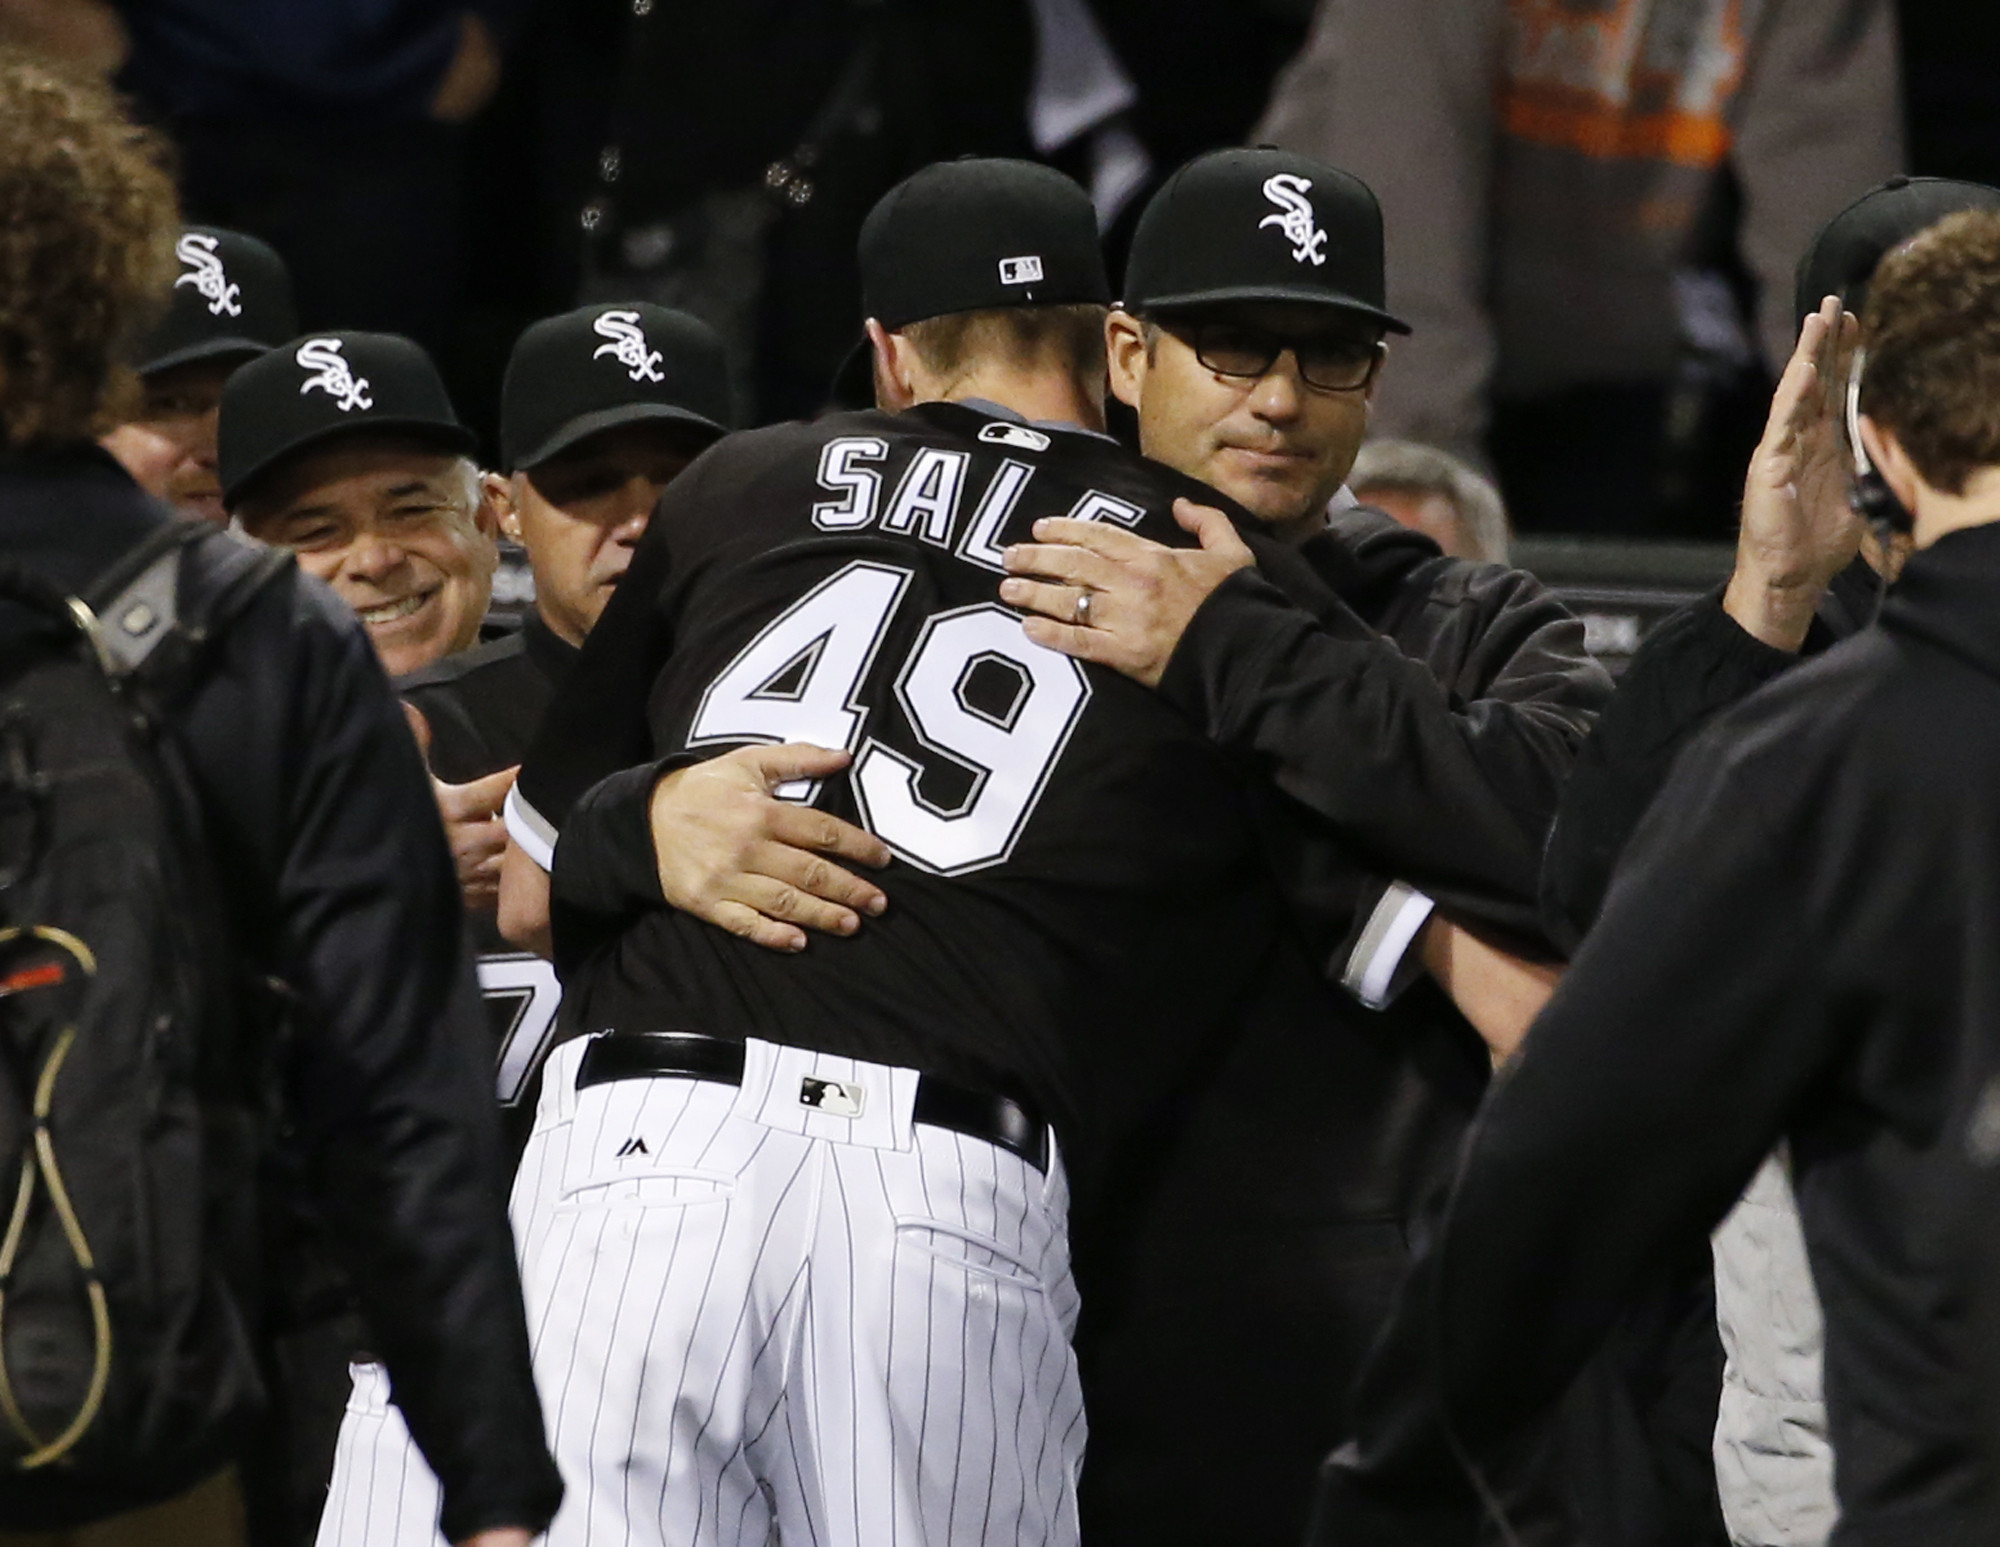 Ct-white-sox-whats-ahead-spt-0715-20160714